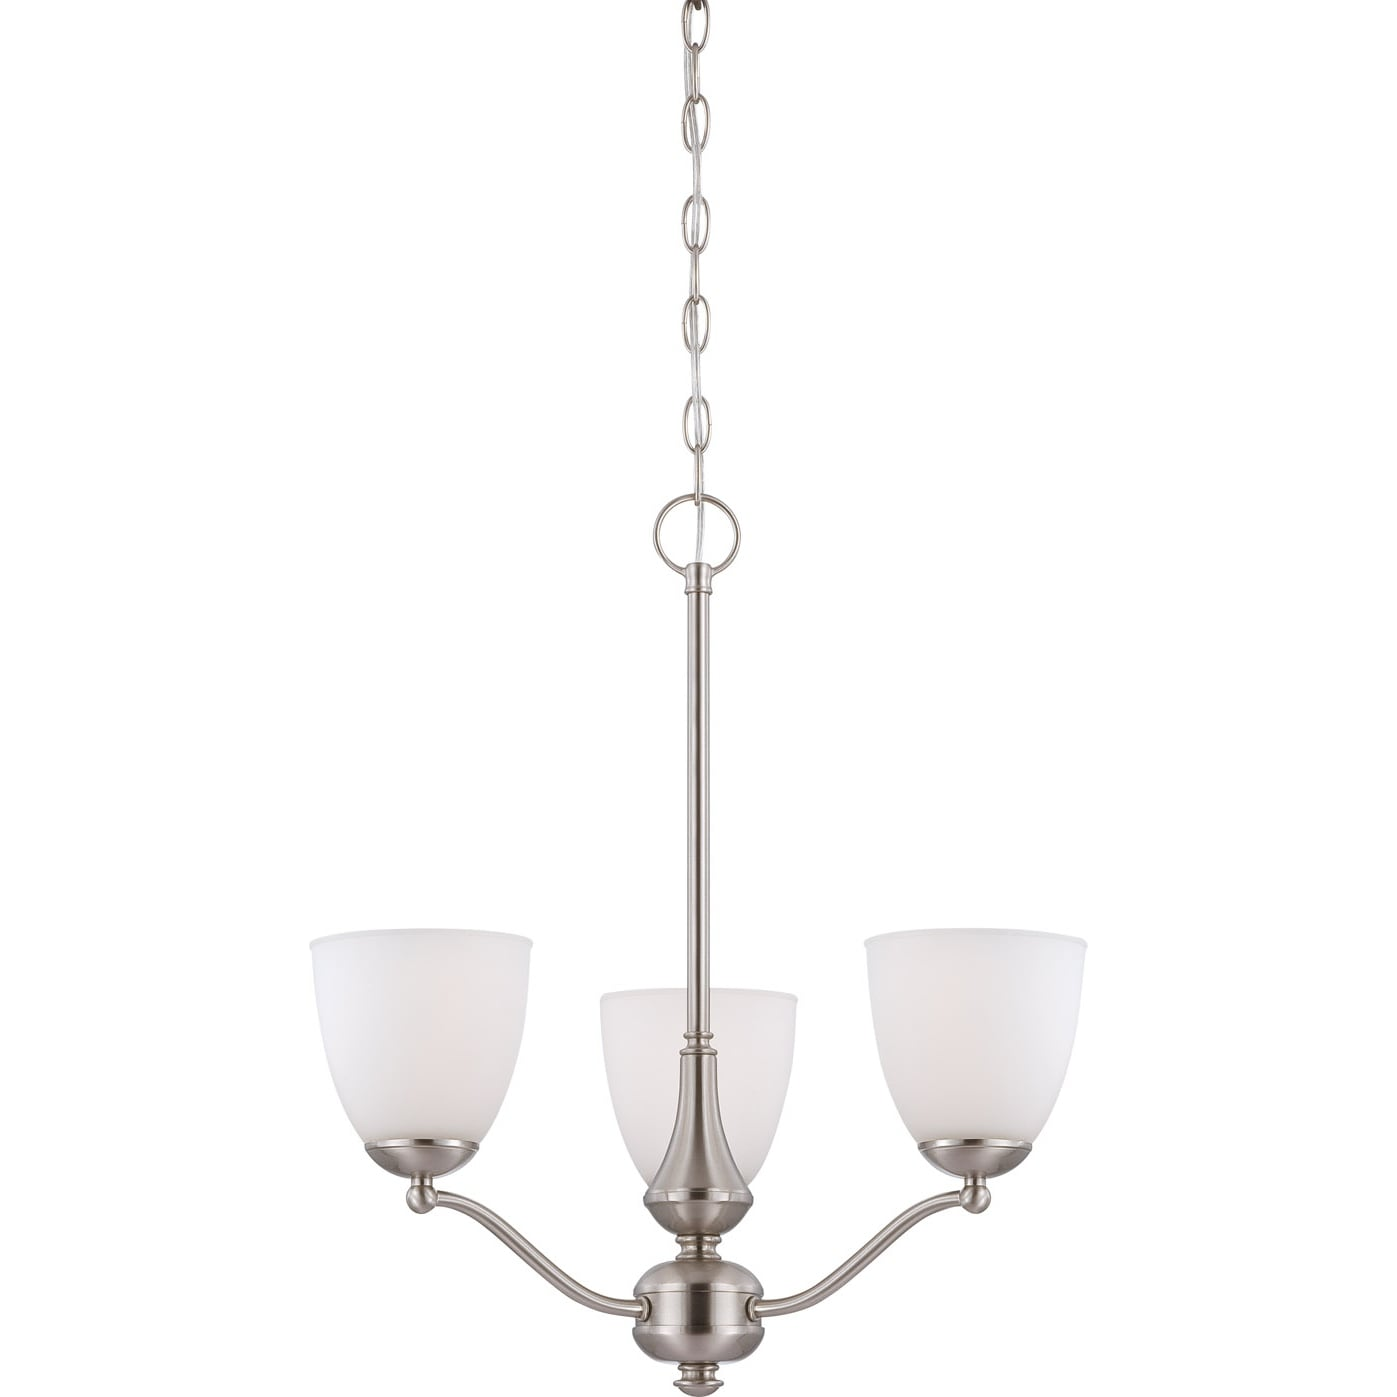 Nuvo 'Patton' 3-light Brushed Nickel Fluorescent Chandelier